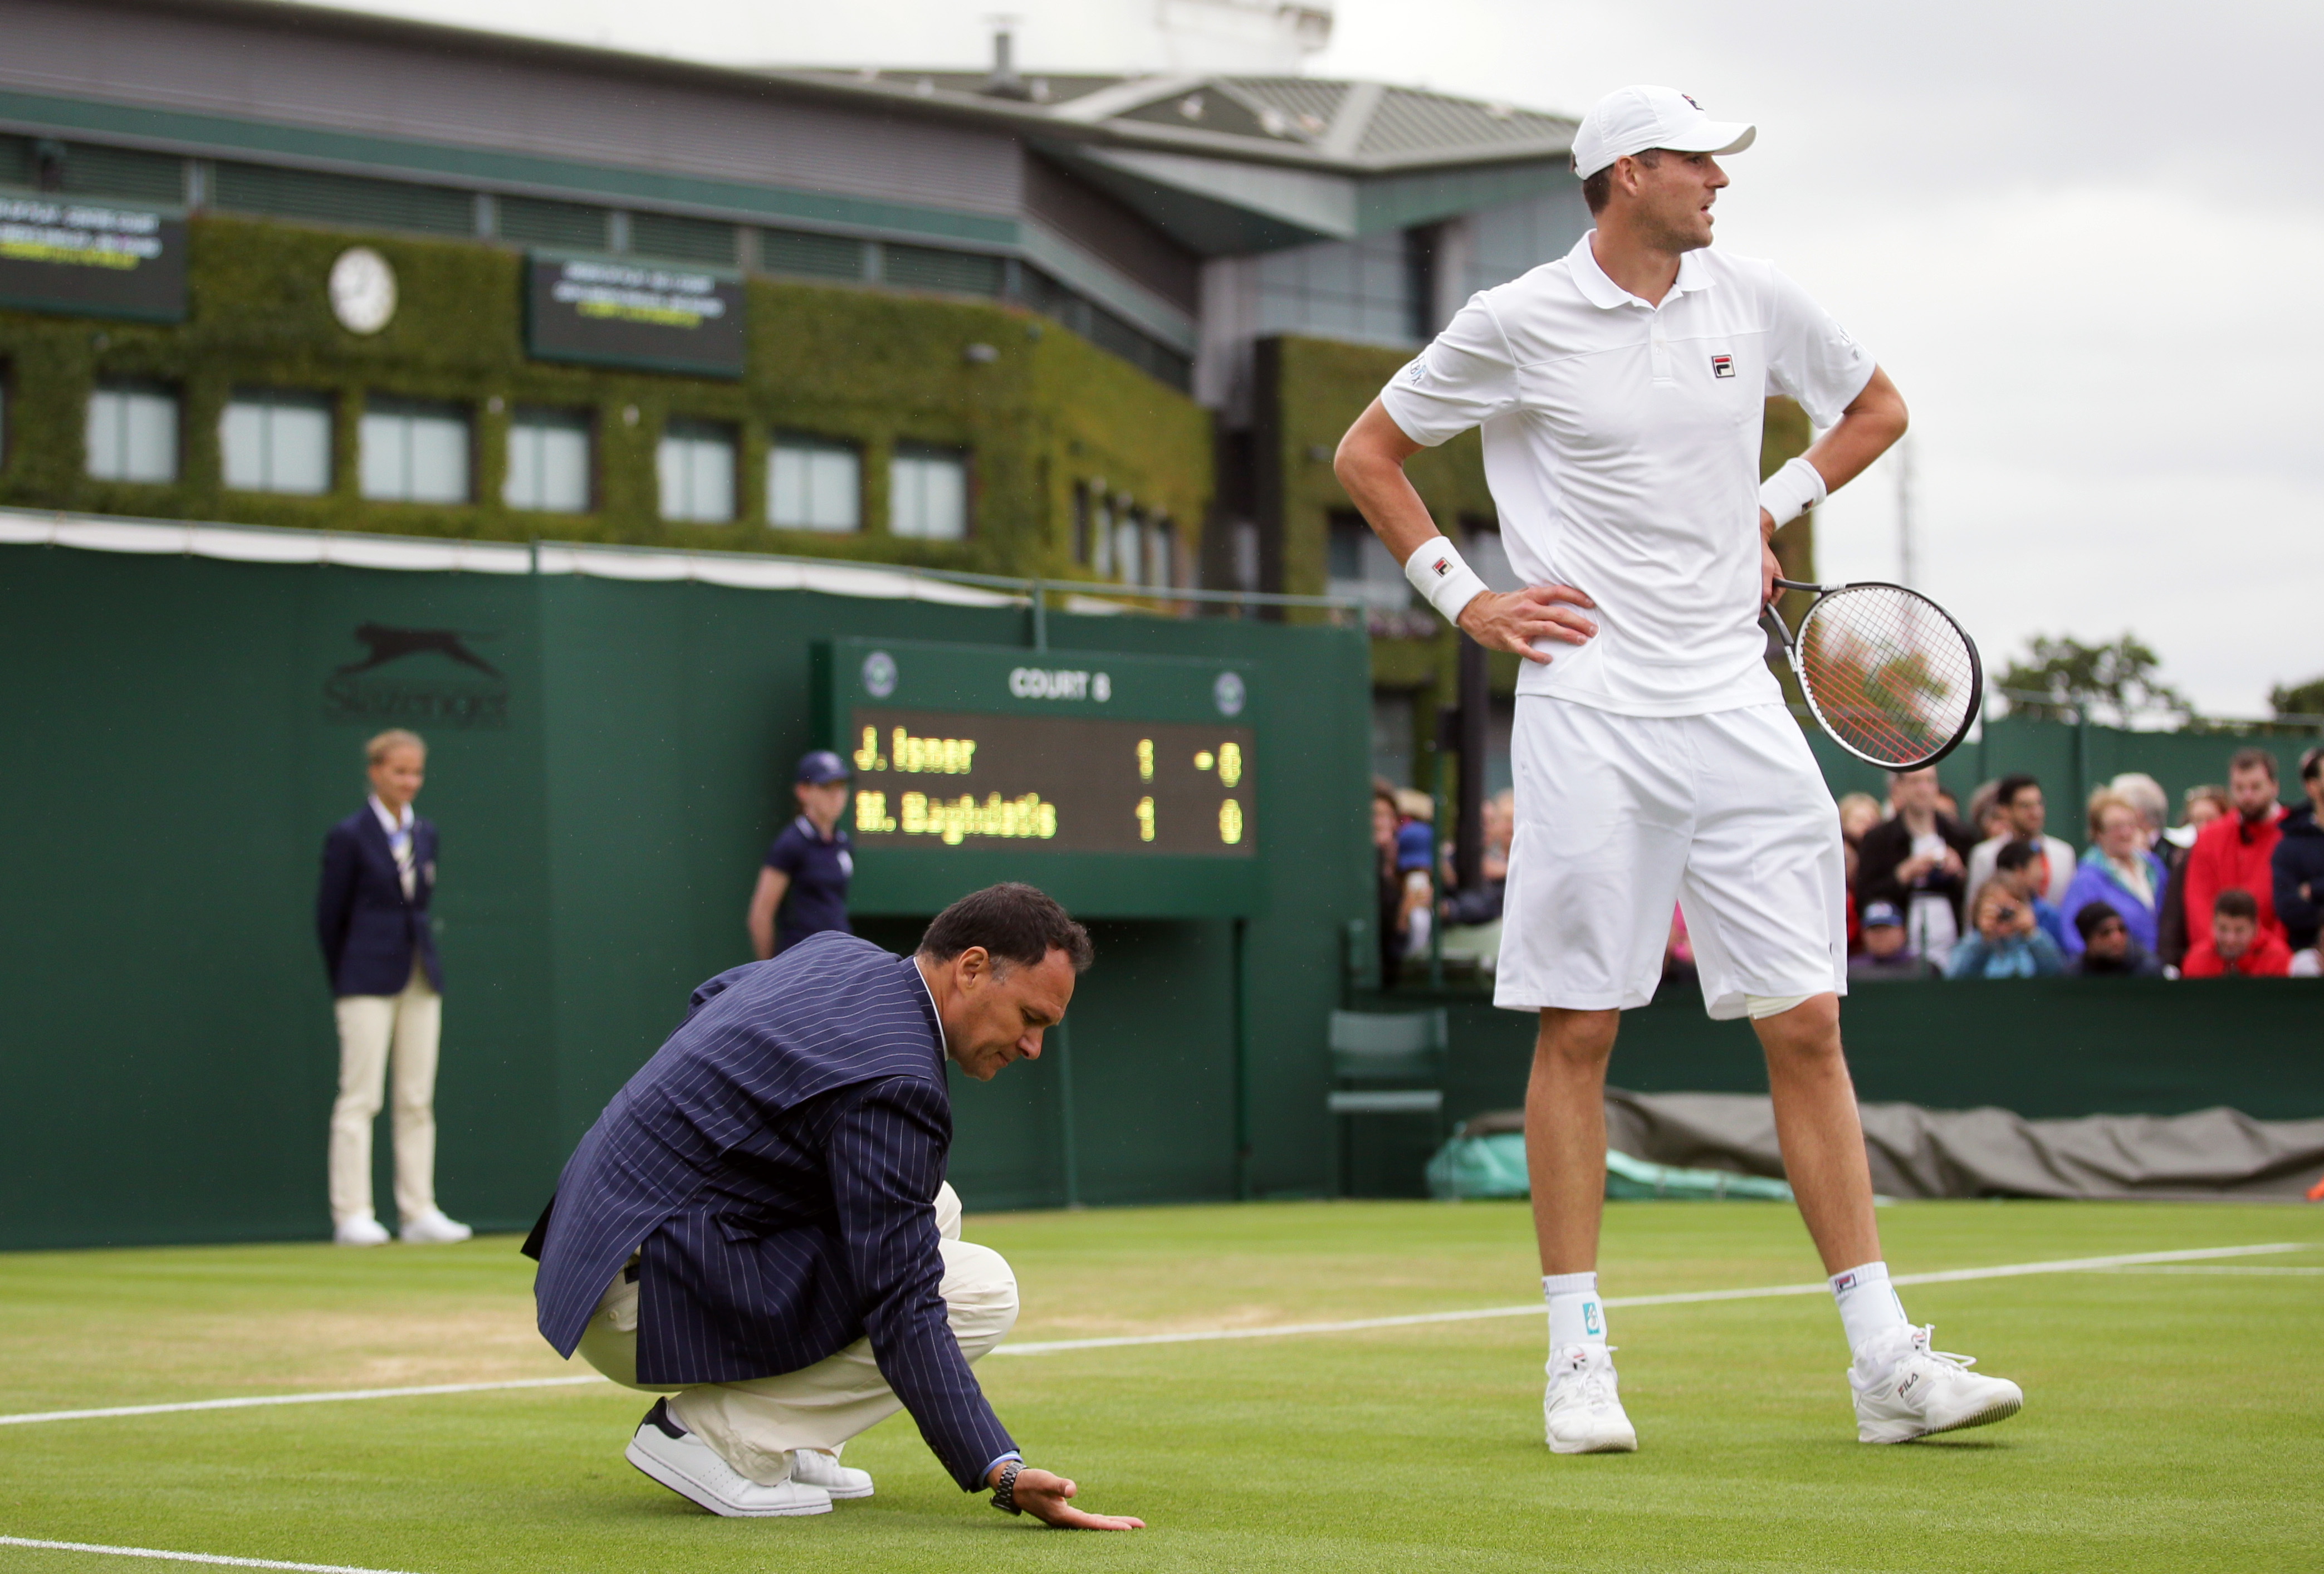 The umpire checks the ground for rain during the men's singles match between John Isner of the US, right, and Marcos Baghdatis of Cyprus on day three of the Wimbledon Tennis Championships in London, Wednesday, June 29, 2016. (AP Photo/Tim Ireland)